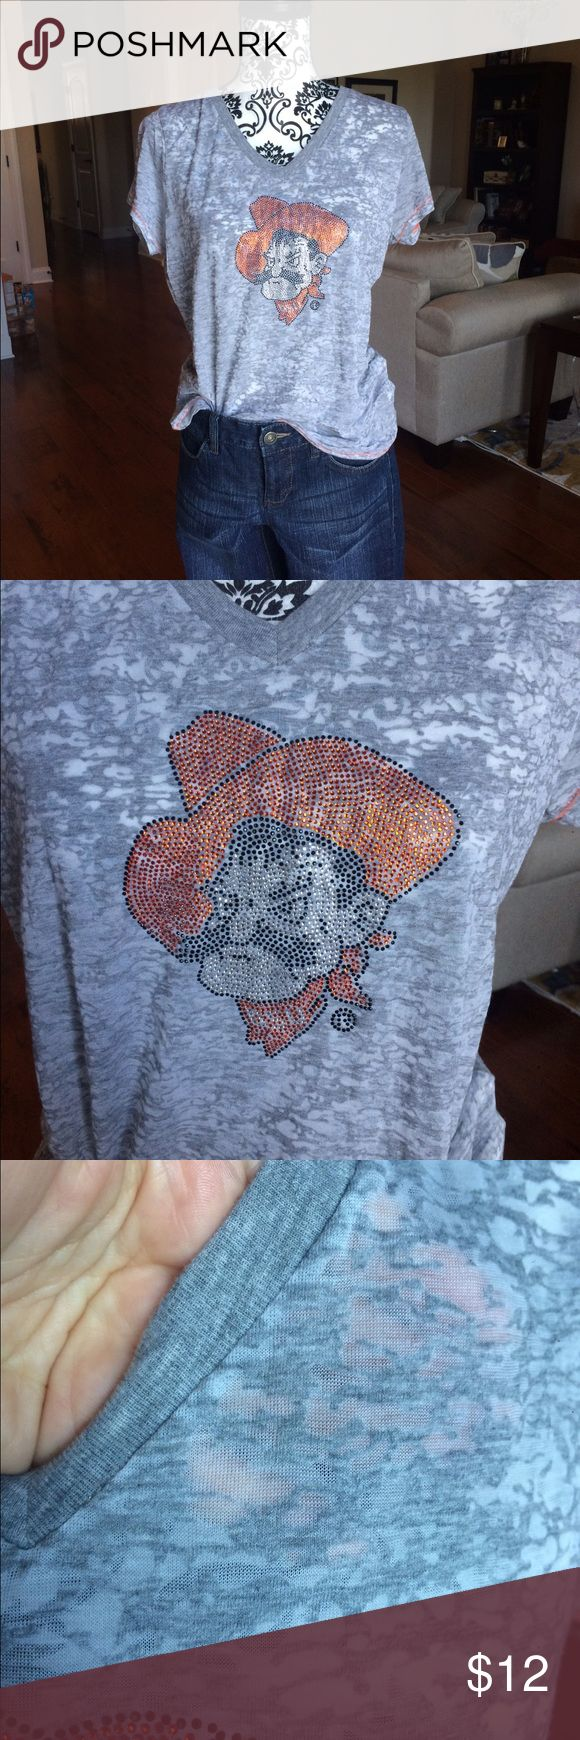 OSU burnout t-shirt This is an Oklahoma state University t-shirt with pistol Pete on the front. No rips tears or stains. In great condition. 4her Tops Tees - Short Sleeve